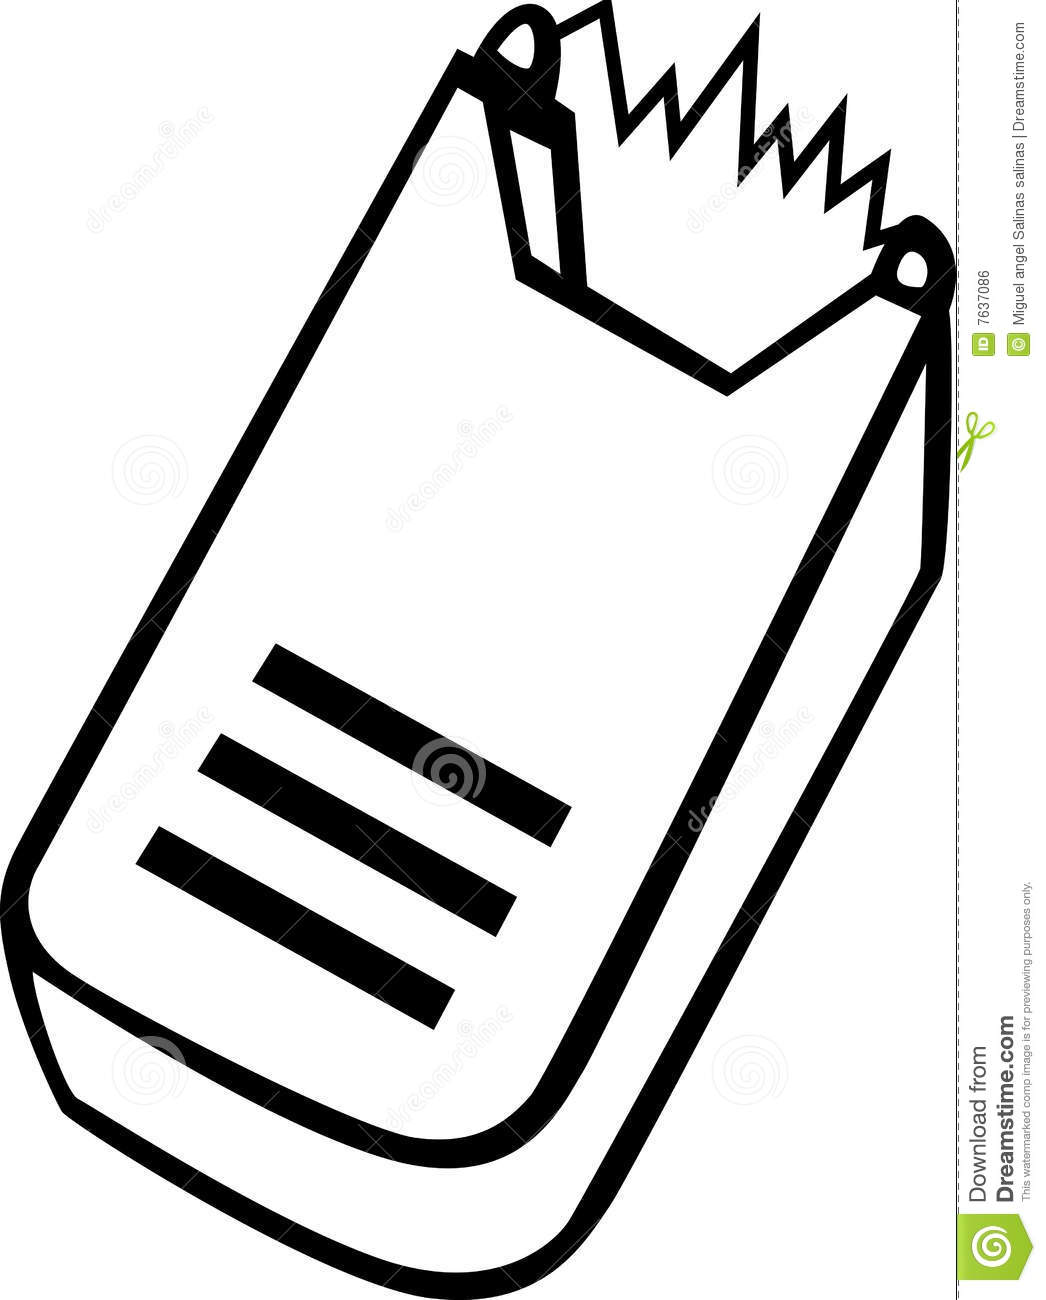 Electric Stun Gun Vector Illustration Royalty Free Stock